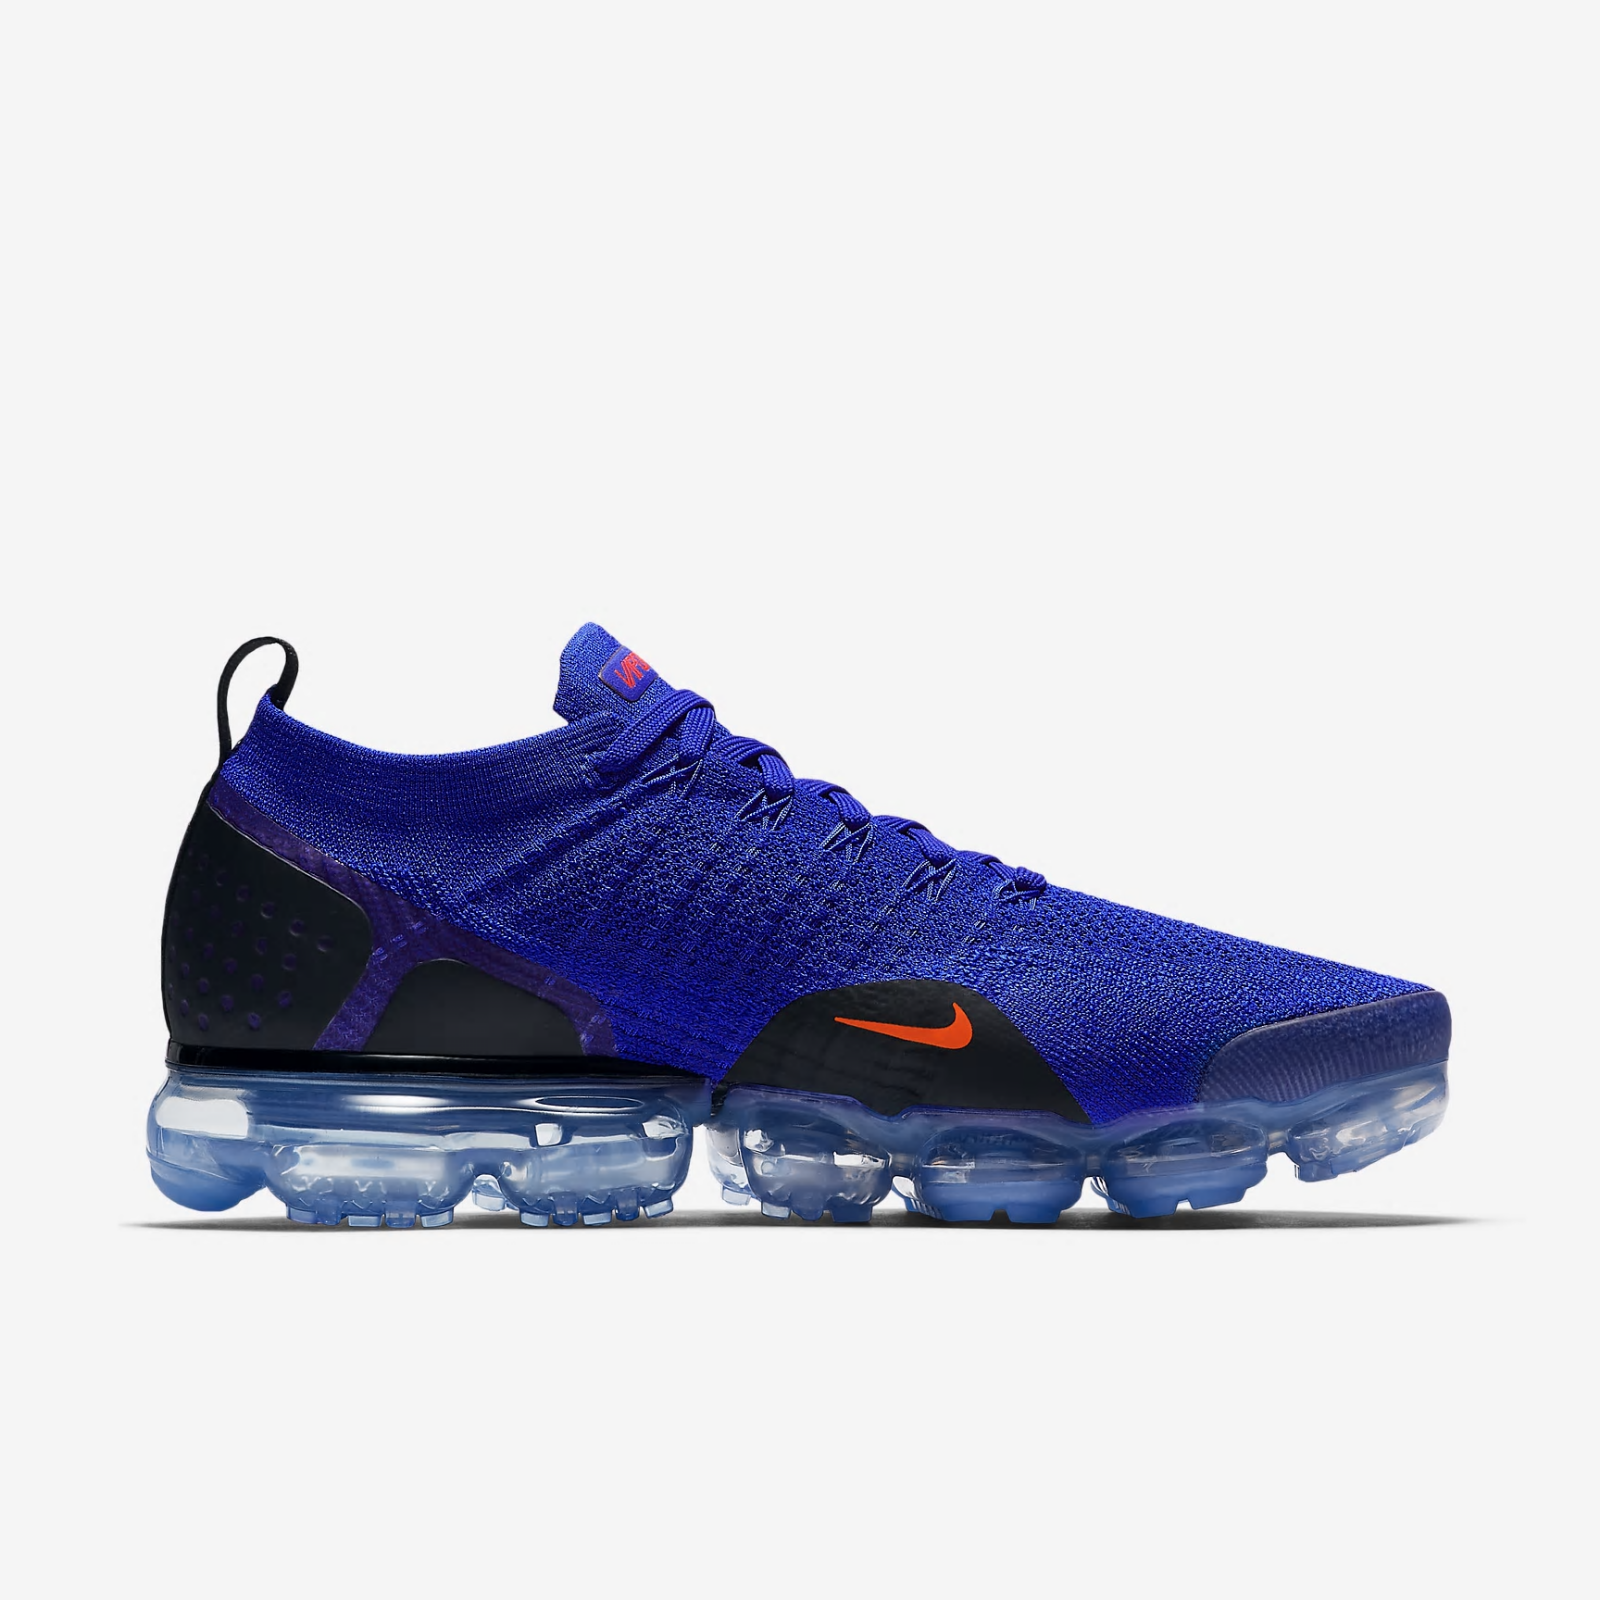 Men's Authentic Nike Air Vapor Max Flyknit 2 and 50 similar